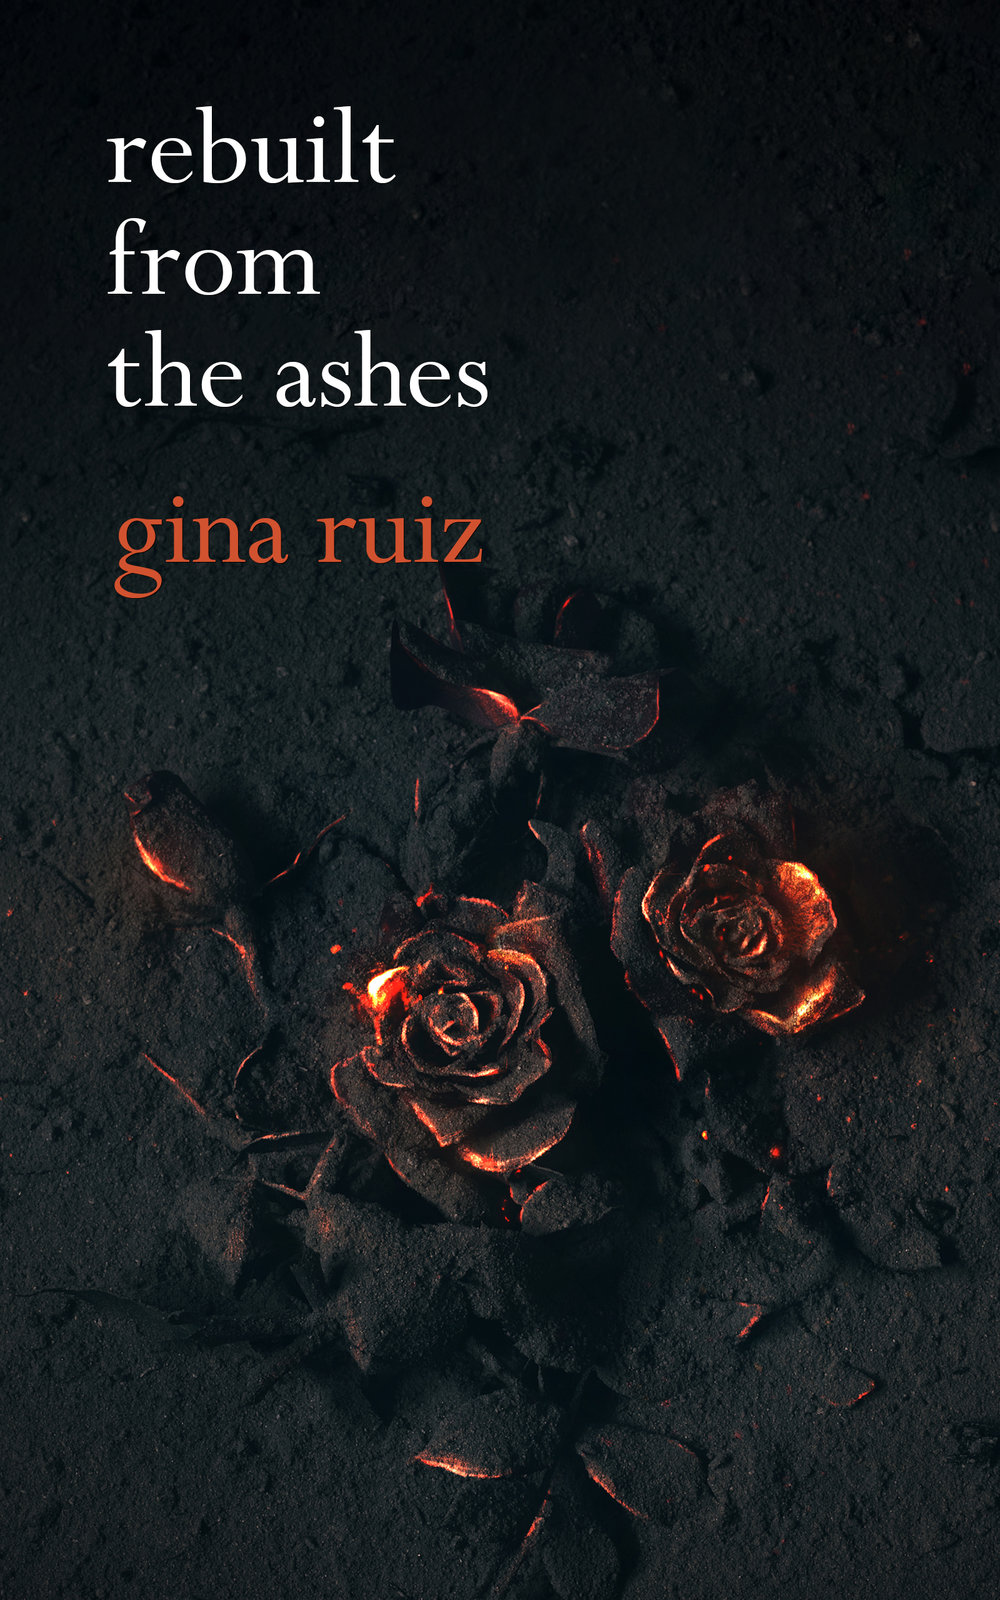 kindle_cover_gina_ruiz.jpg